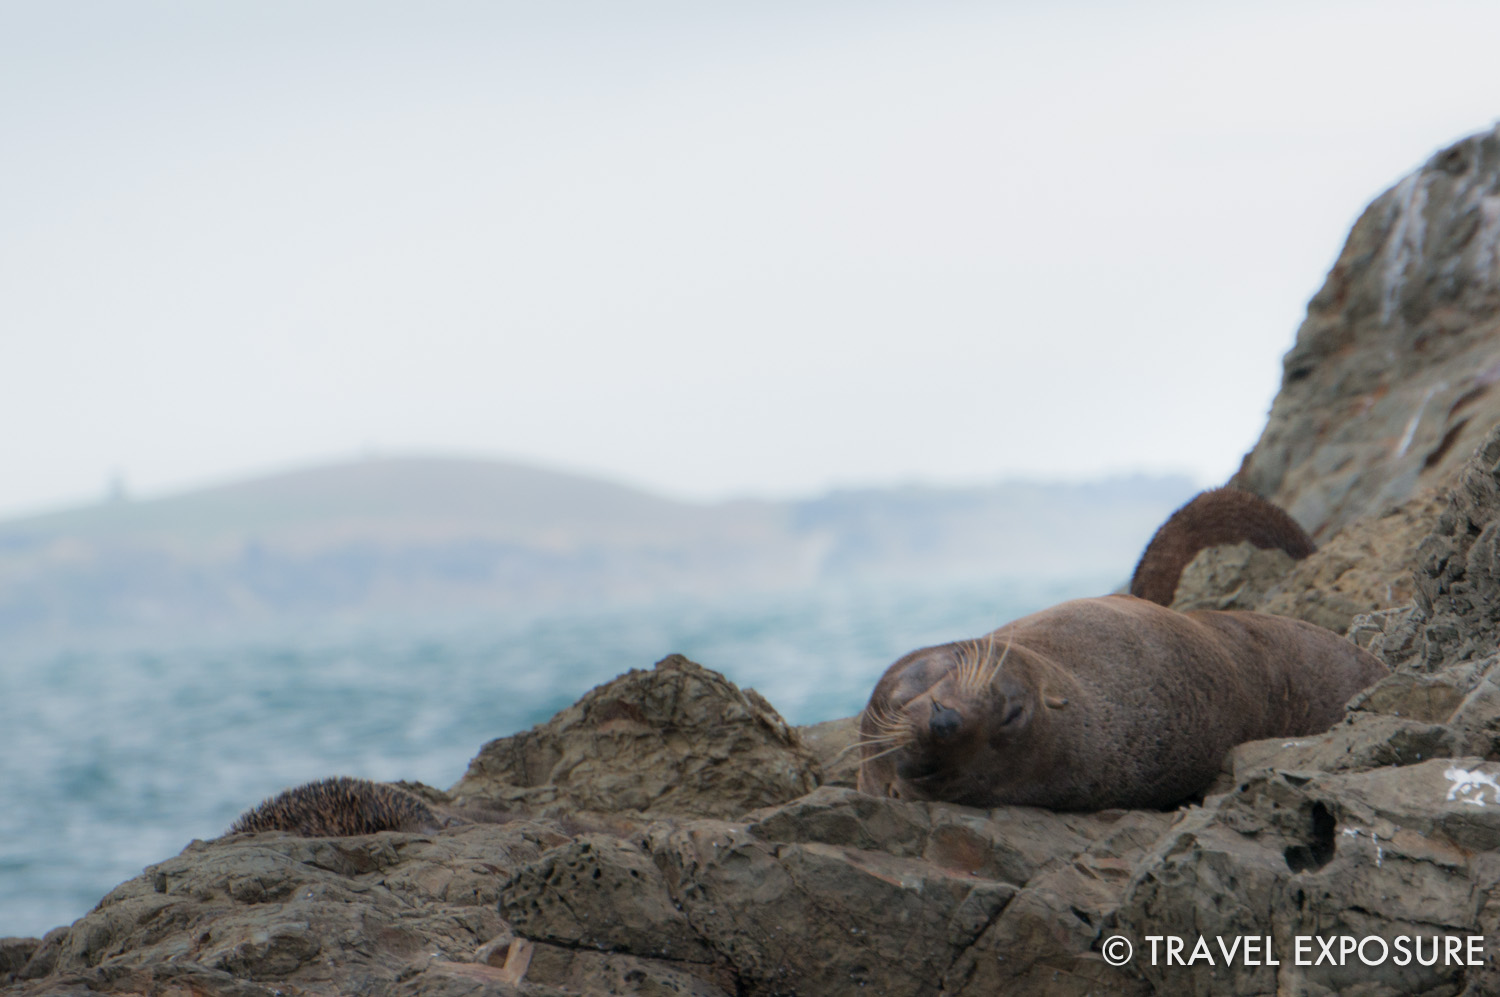 A fur seal rests on the rocks near Kaikoura.